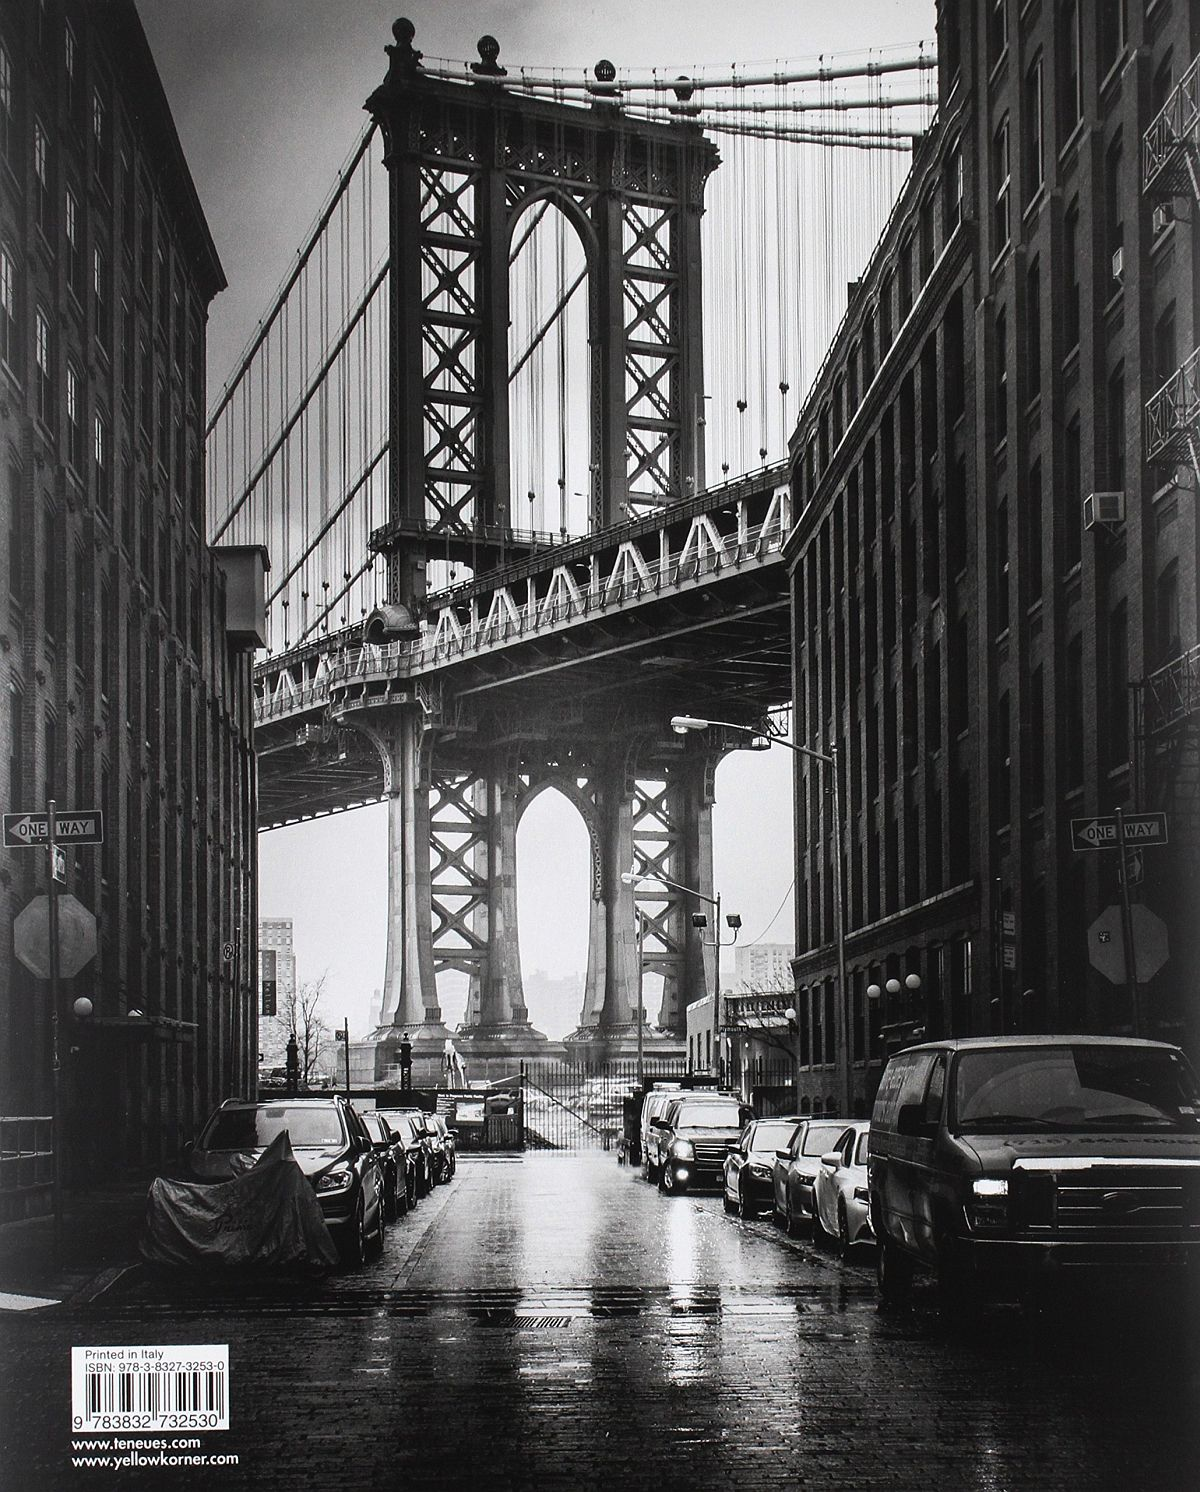 © New York by Serge Ramelli, published by teNeues, www.teneues.com. CLASSIC VIEW OF THE MANHATTAN BRIDGE IN BROOKLYN, Photo © 2015 Serge Ramelli and YellowKorner.